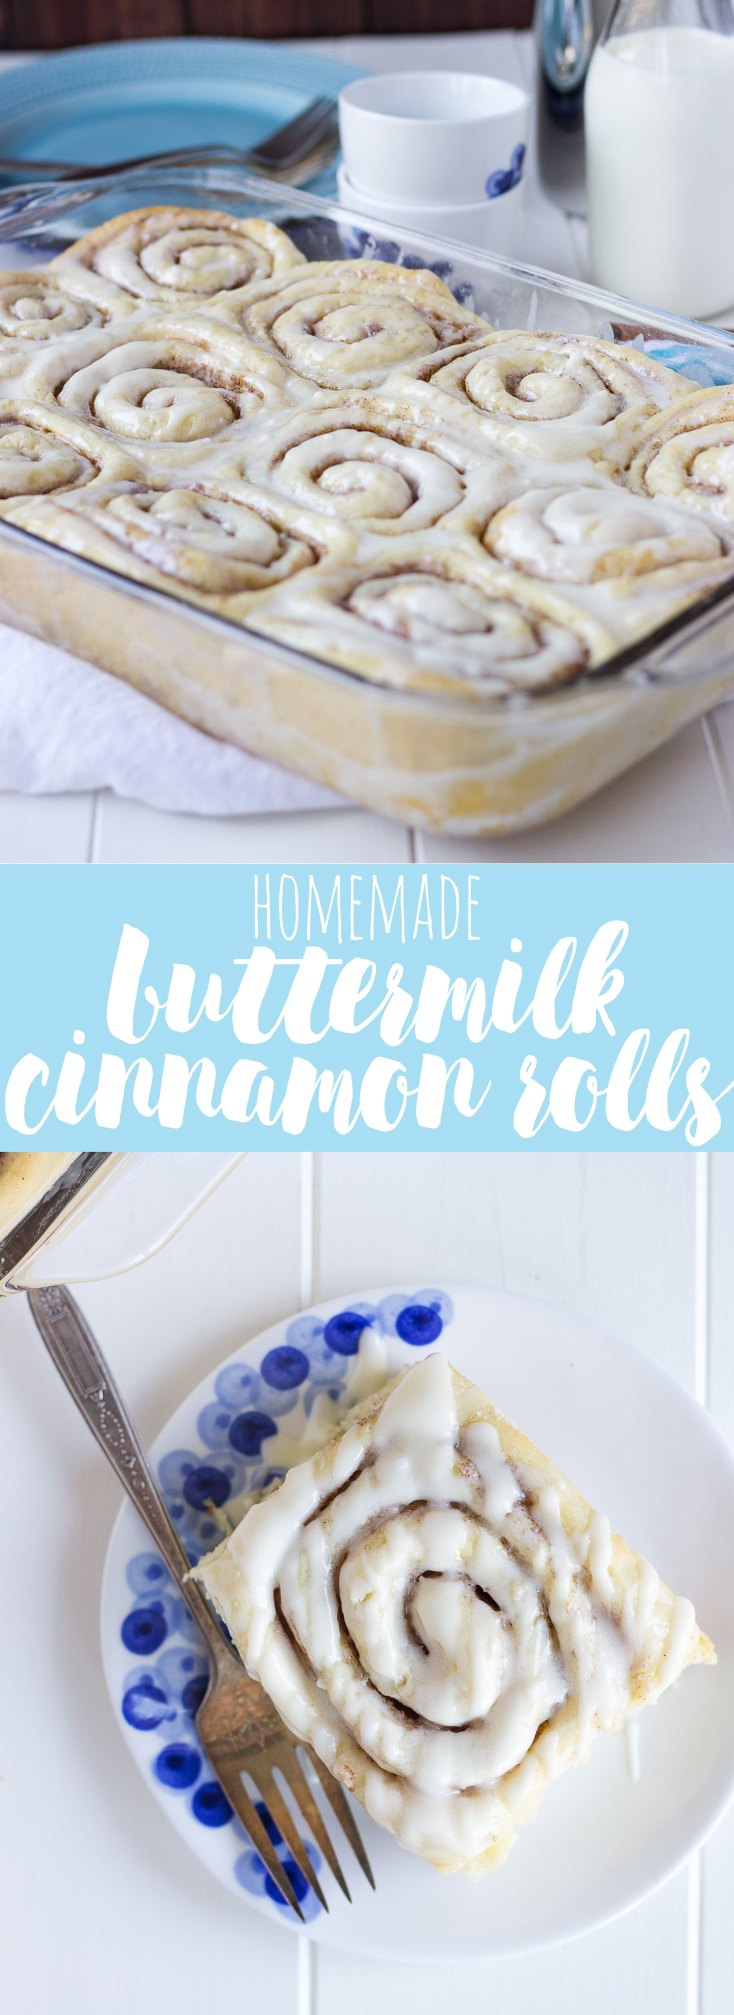 Homemade Buttermilk Cinnamon Rolls // Fork in the Kitchen